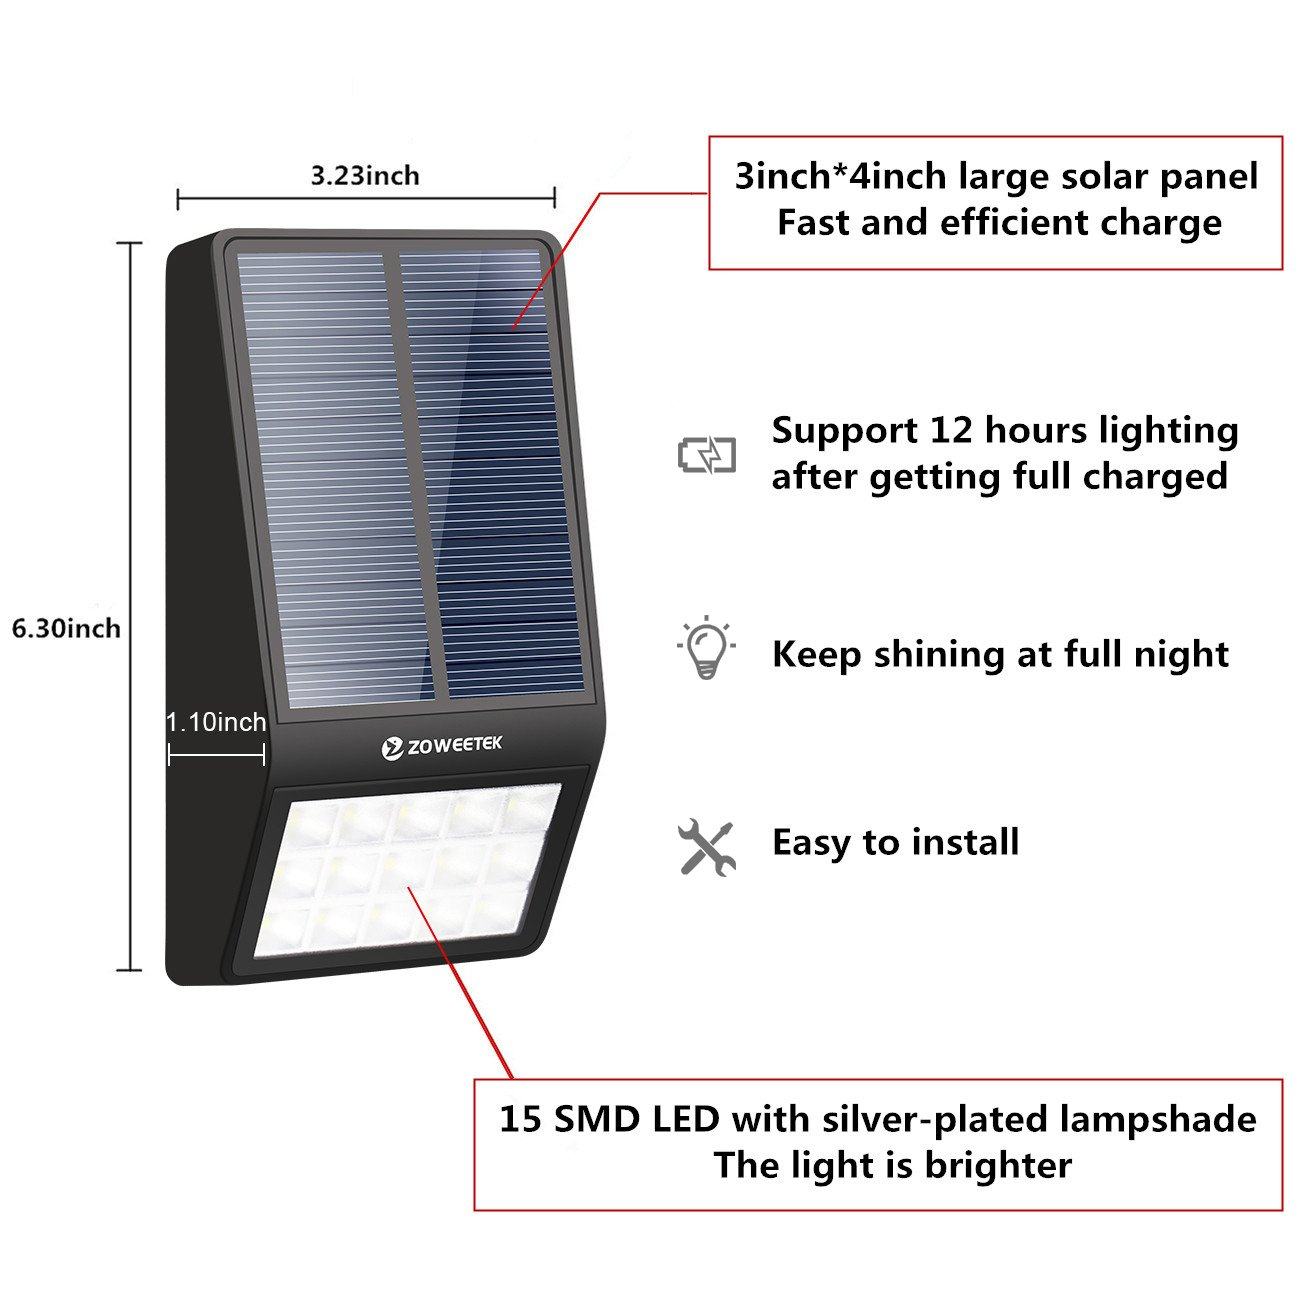 Zoweetek Outdoor Waterproof Solar Wall Light with Motion Sensor and Photosensitive Sensor for Garden, Fence, Patio, Driveway, Step, Yard, Deck, Path